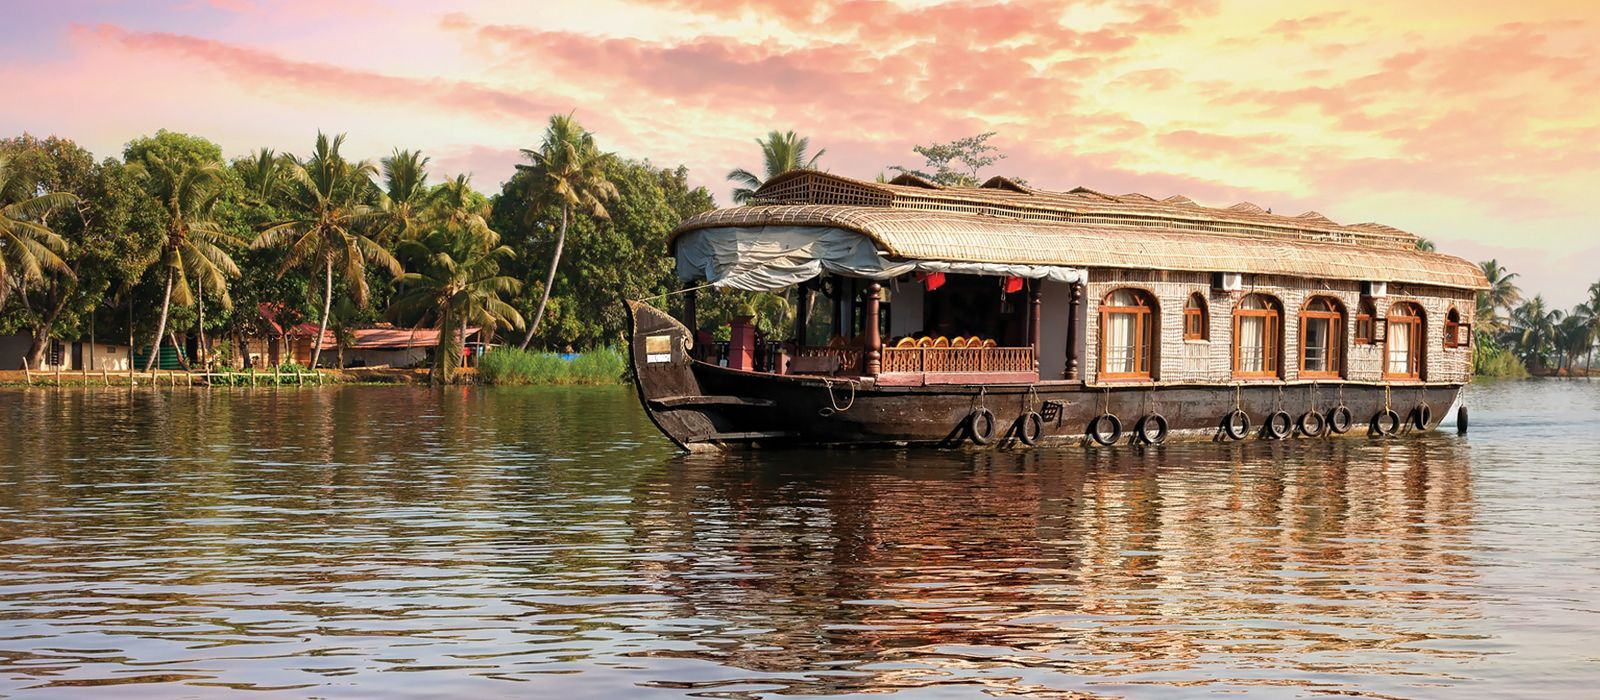 Houseboat in Alleppey Backwater - South India tour